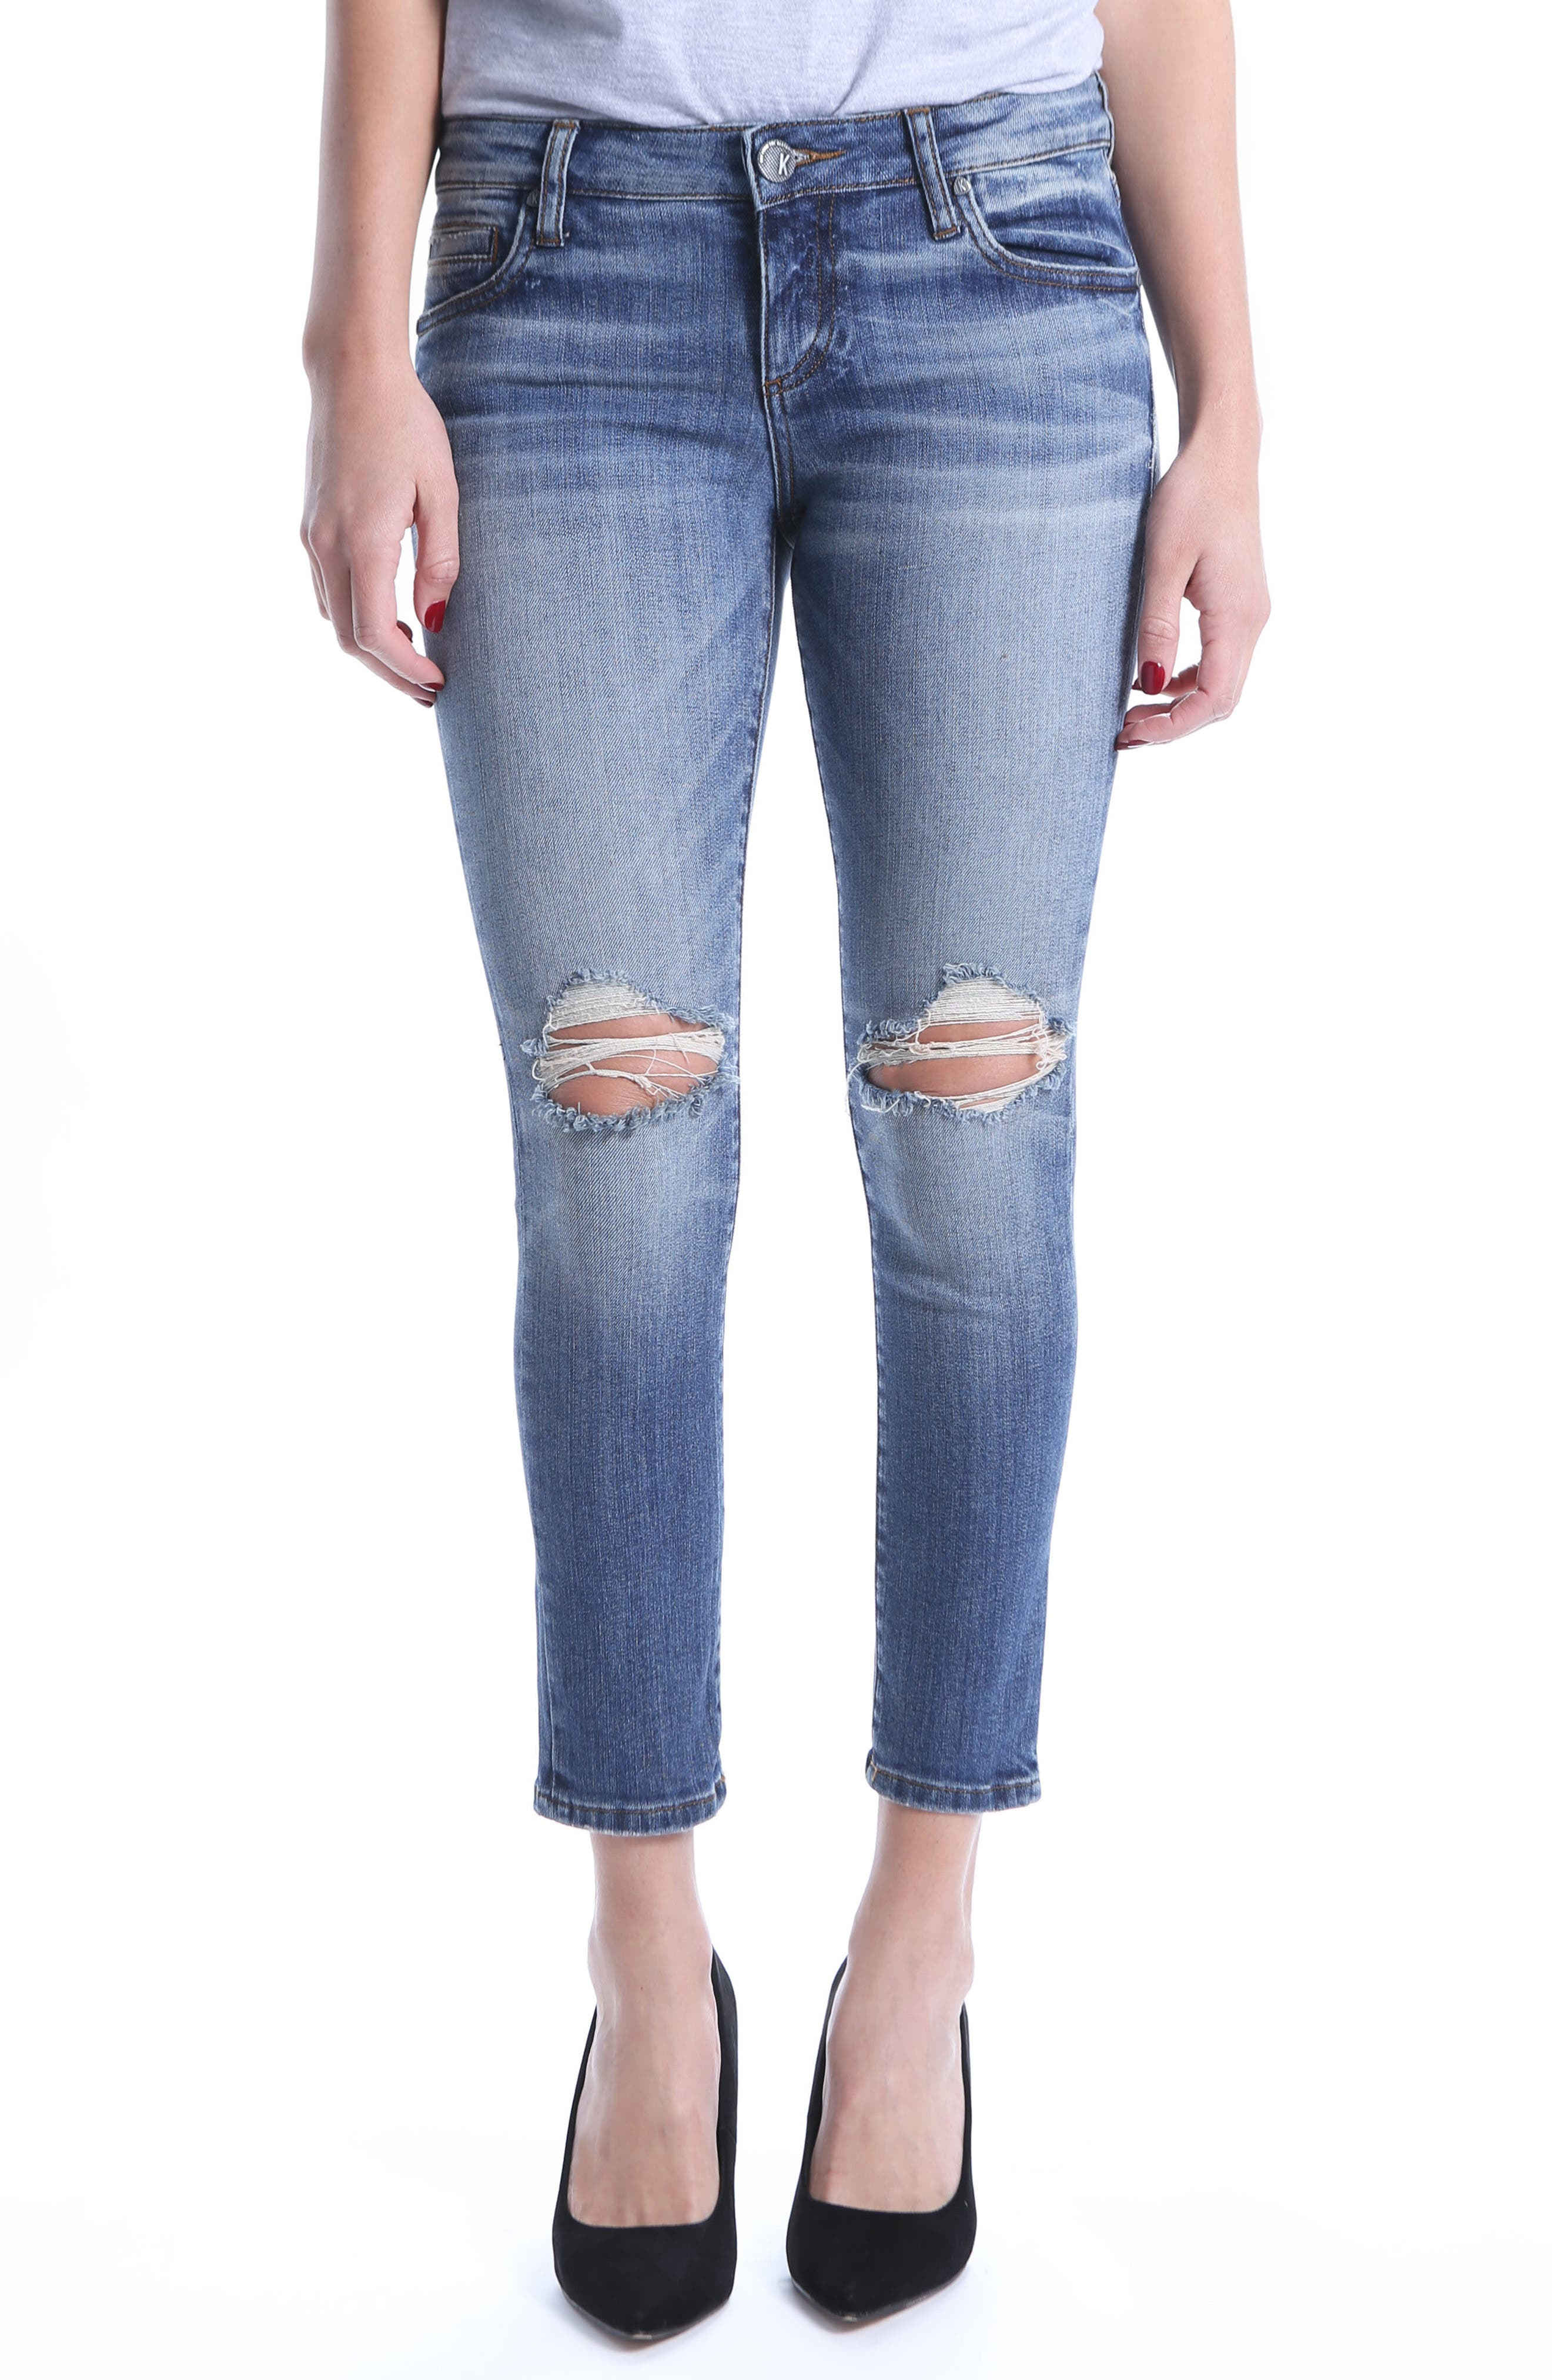 Catherine Ripped Straight Leg Ankle Jeans,                             Main thumbnail 1, color,                             Increase